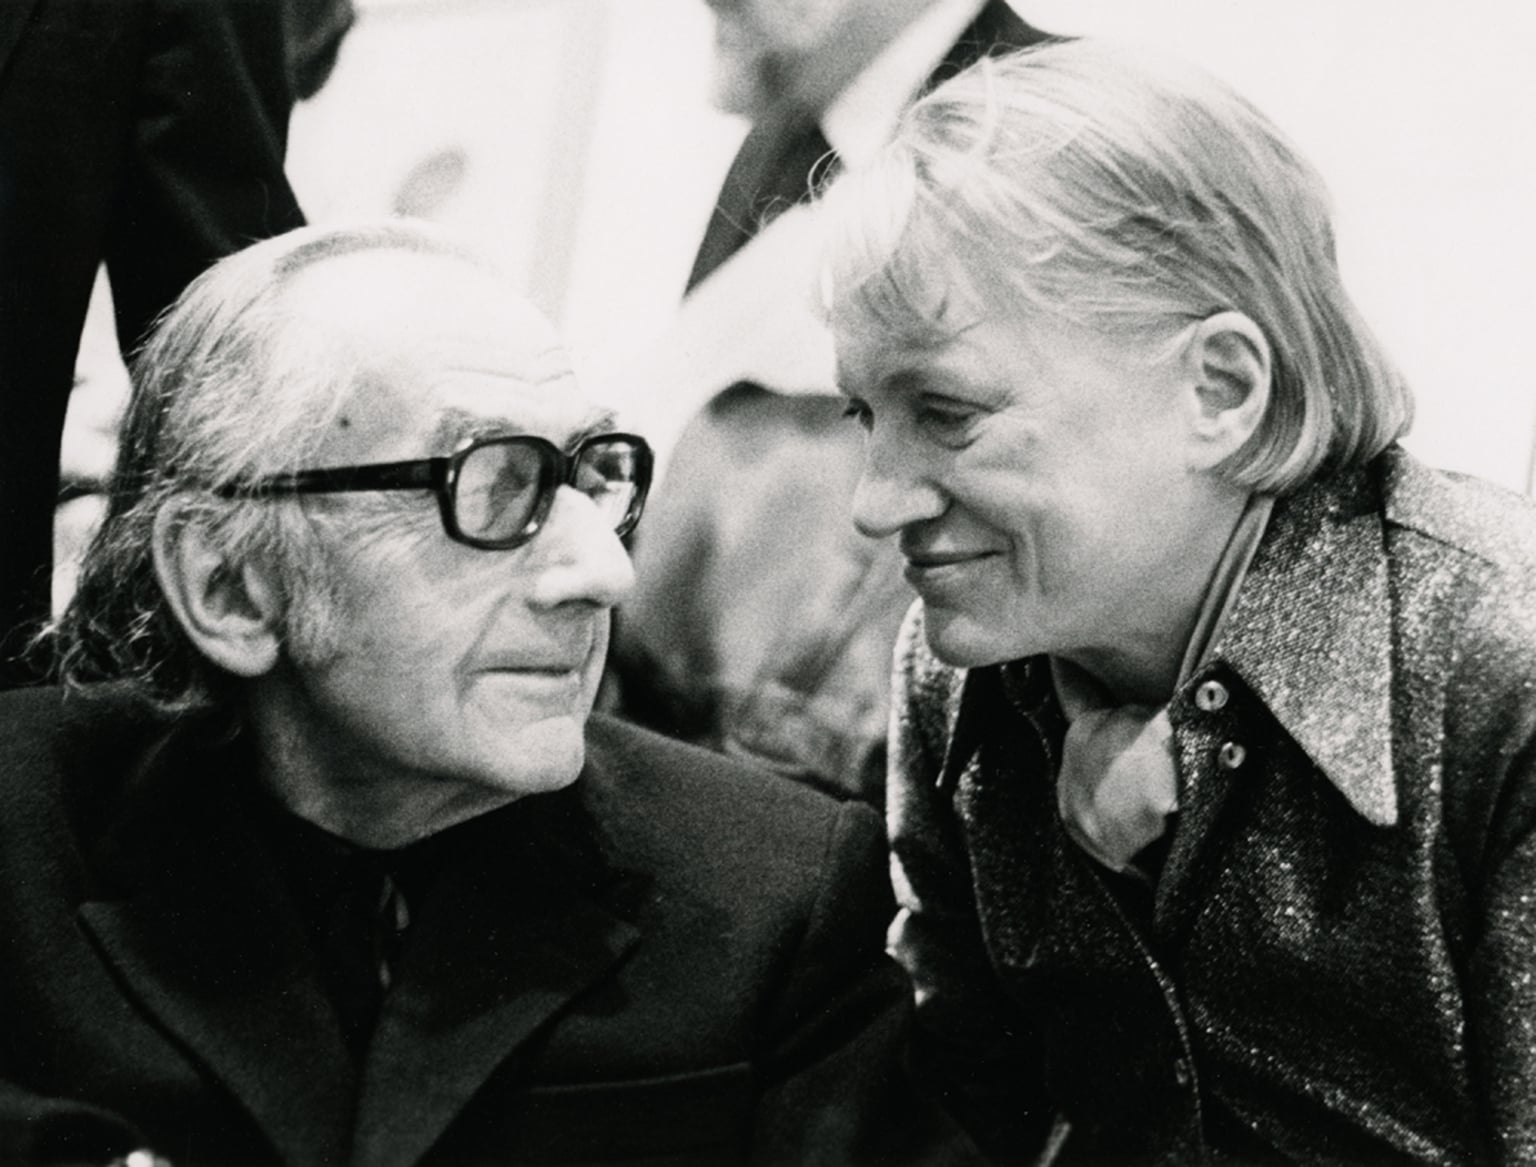 4. Lee Miller and Man Ray, 1975 - Eileen Tweedy/The Roland Penrose Collection